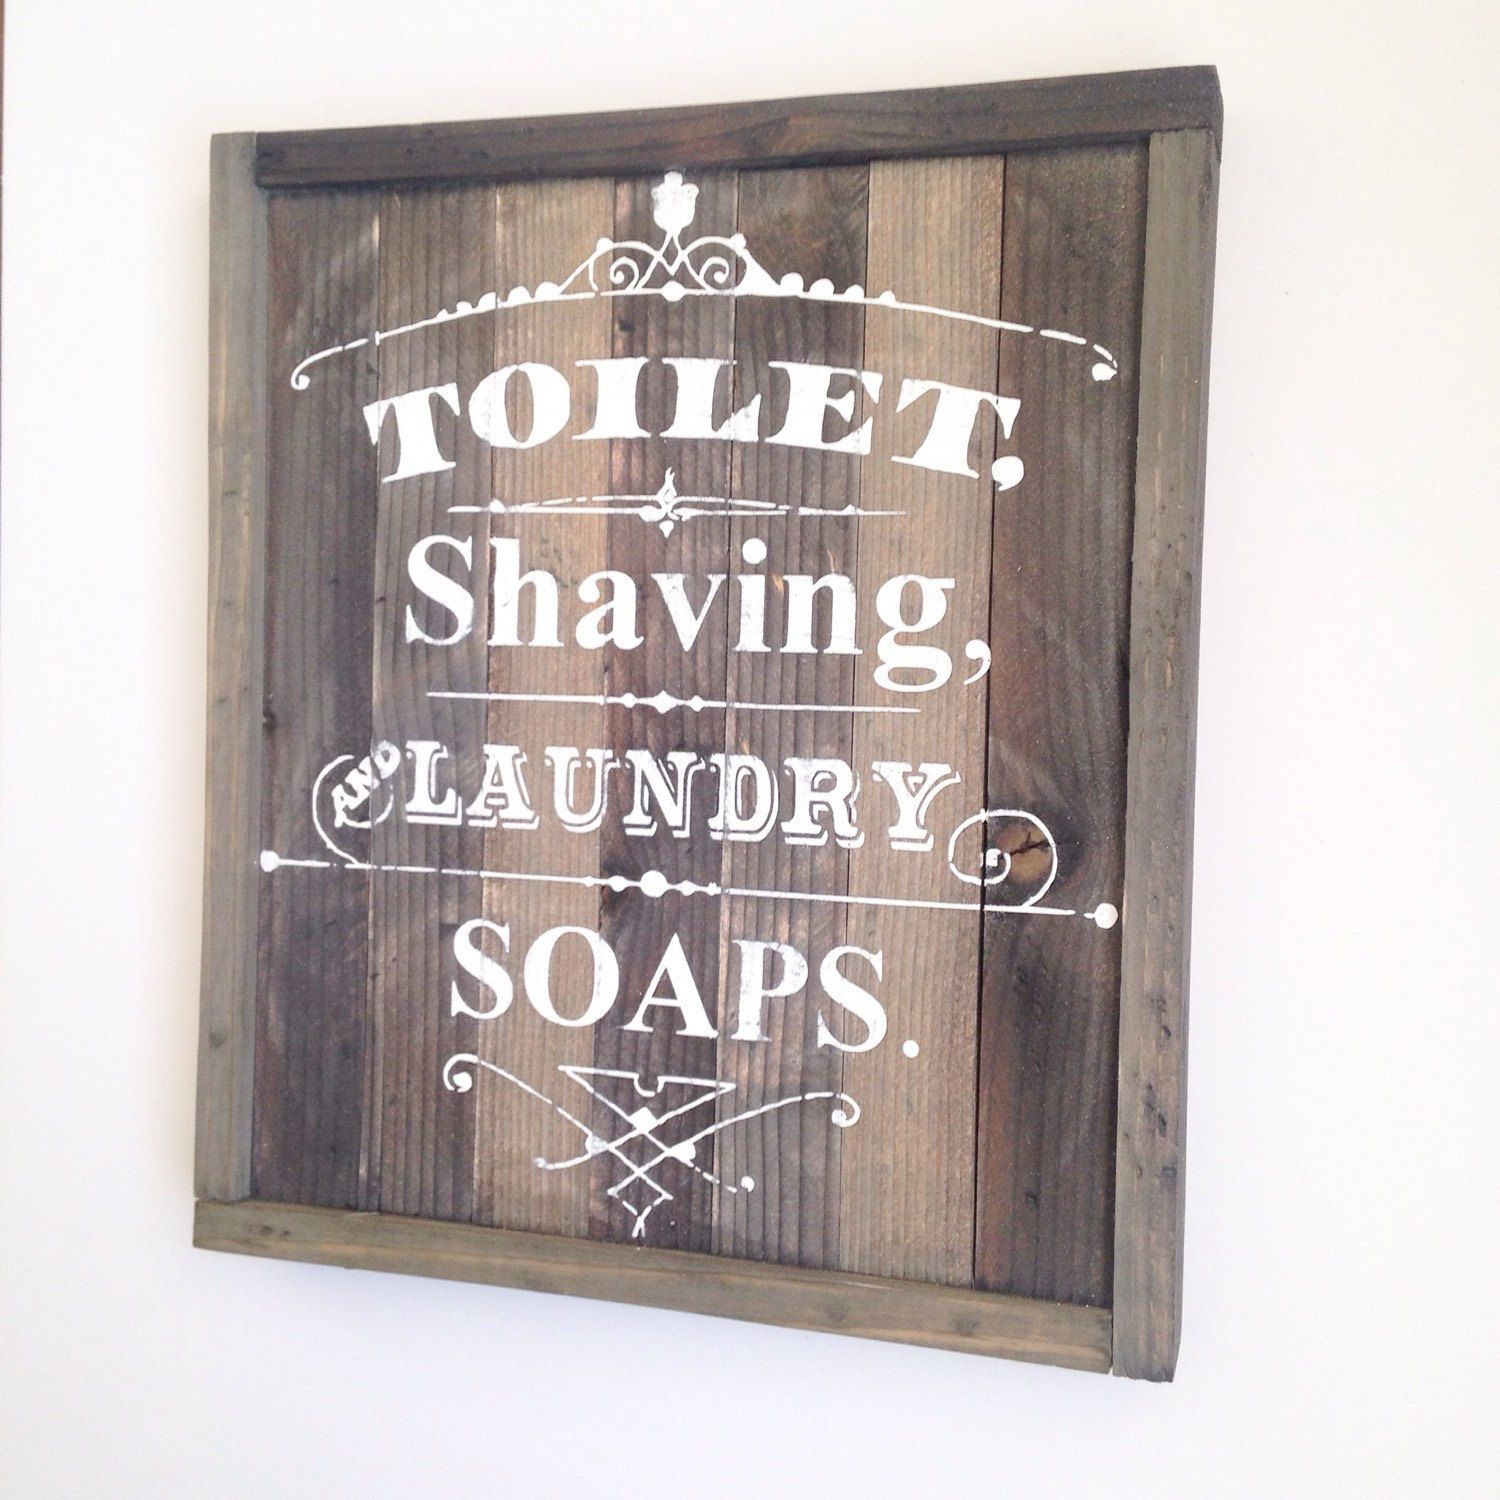 Vintage Bathroom Sign Toilet Shaving Laundry Soap Pallet